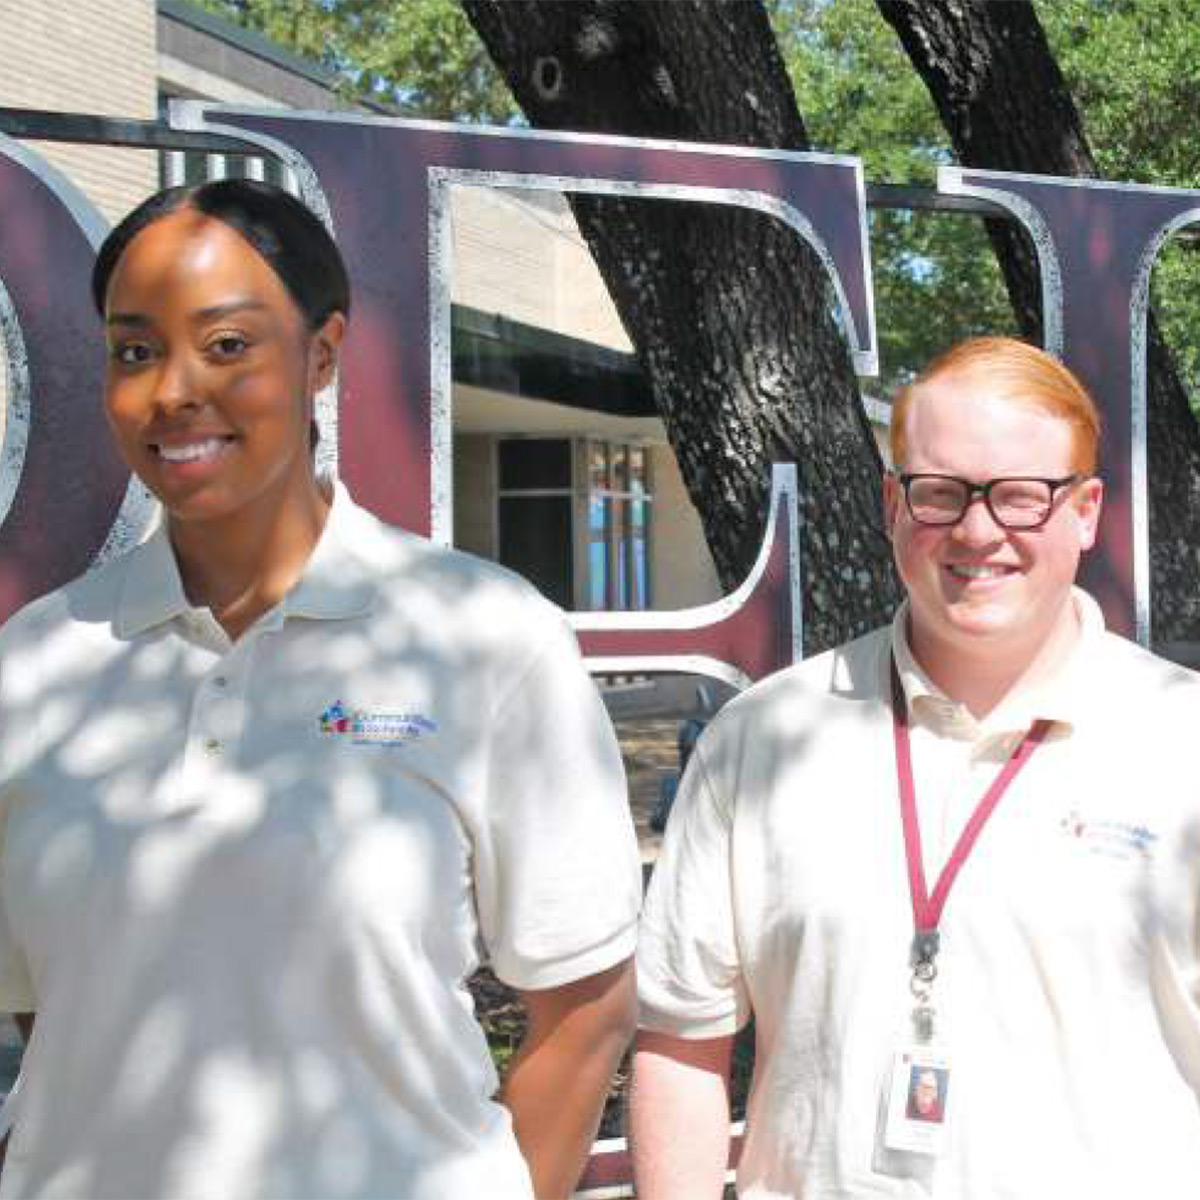 Ennis Daily News: Ennis ISD welcomes student advocate team